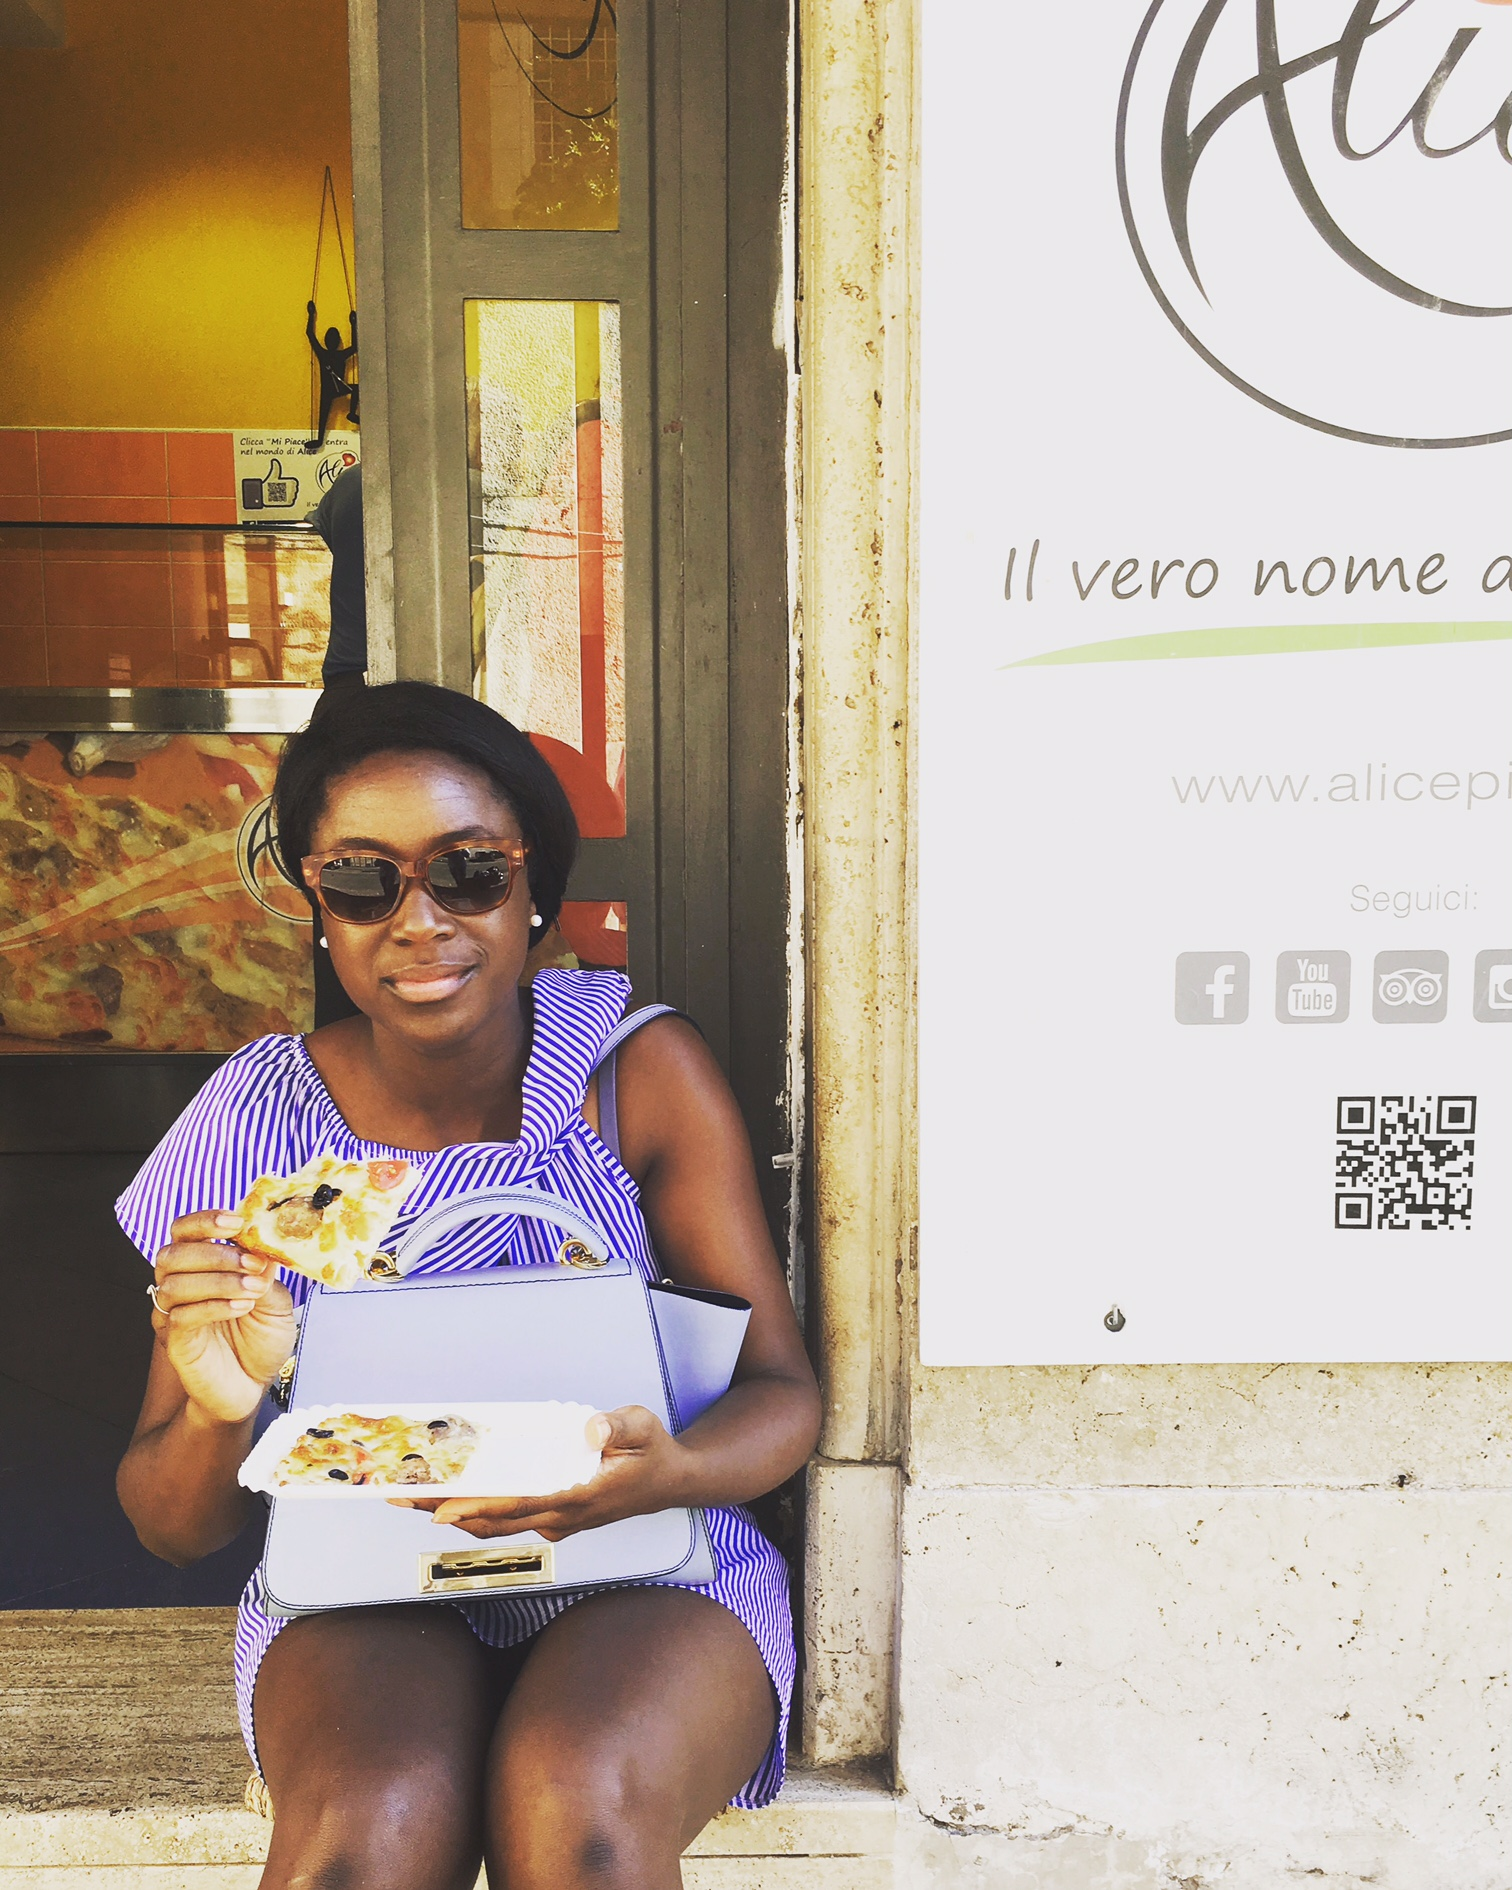 Doing Italy - Thea at Alice Pizza - Rome.JPG